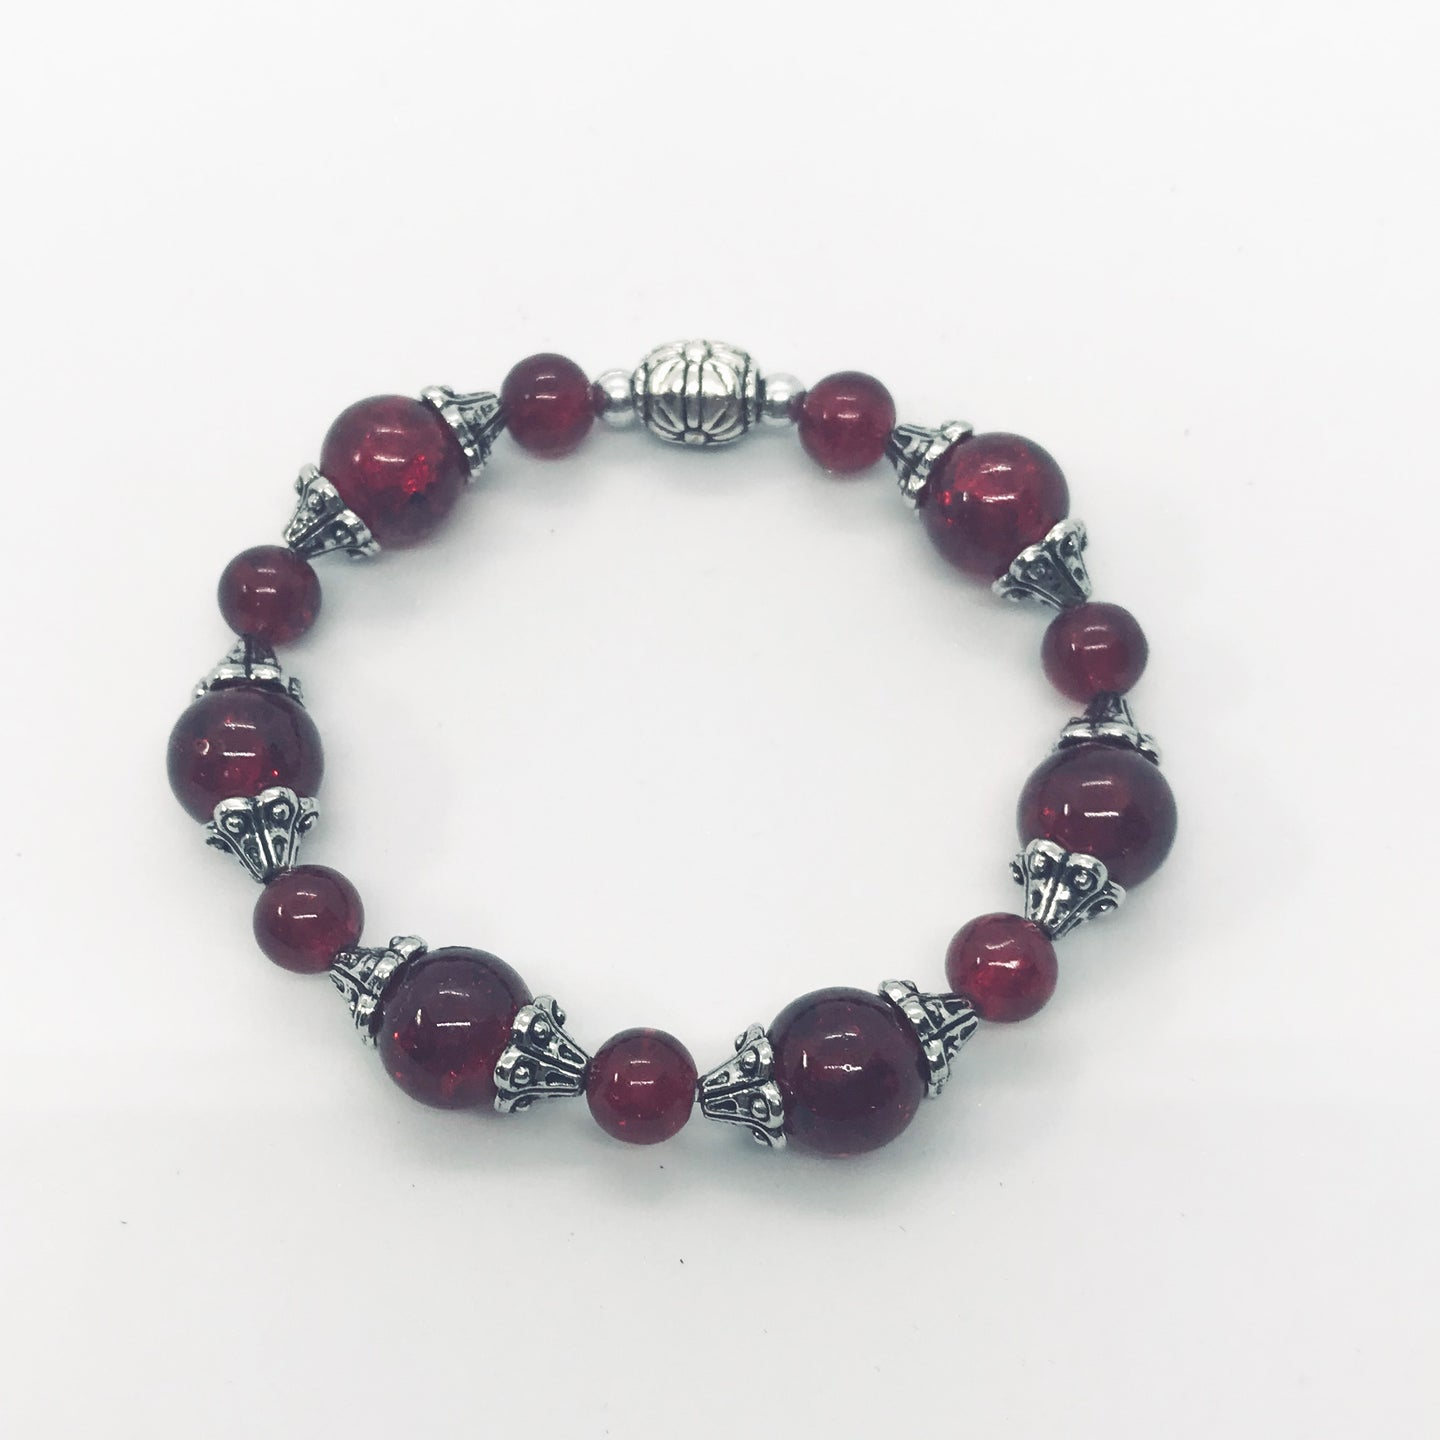 Glass Bead Stretchy Bracelet - B592